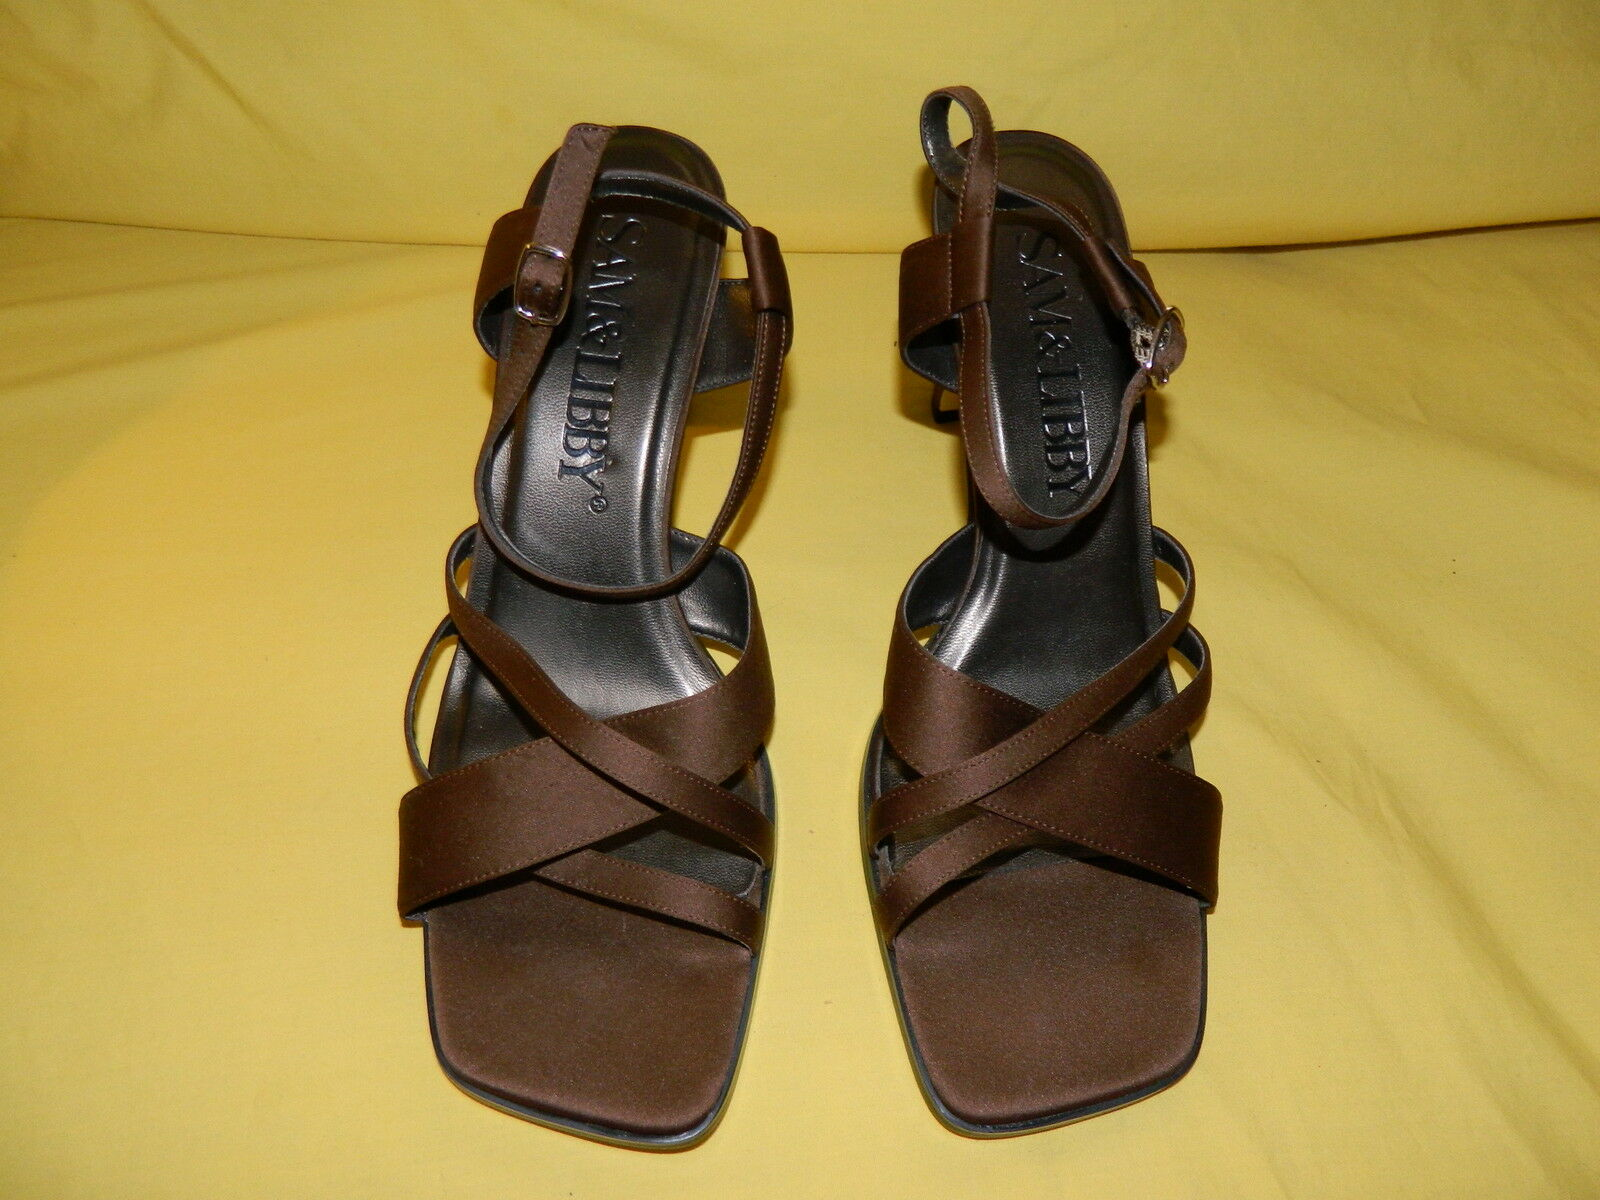 SAM & LIBBY 10M SLINGABCKS SANDALS DARK BROWN 10M LIBBY NWOB c32906